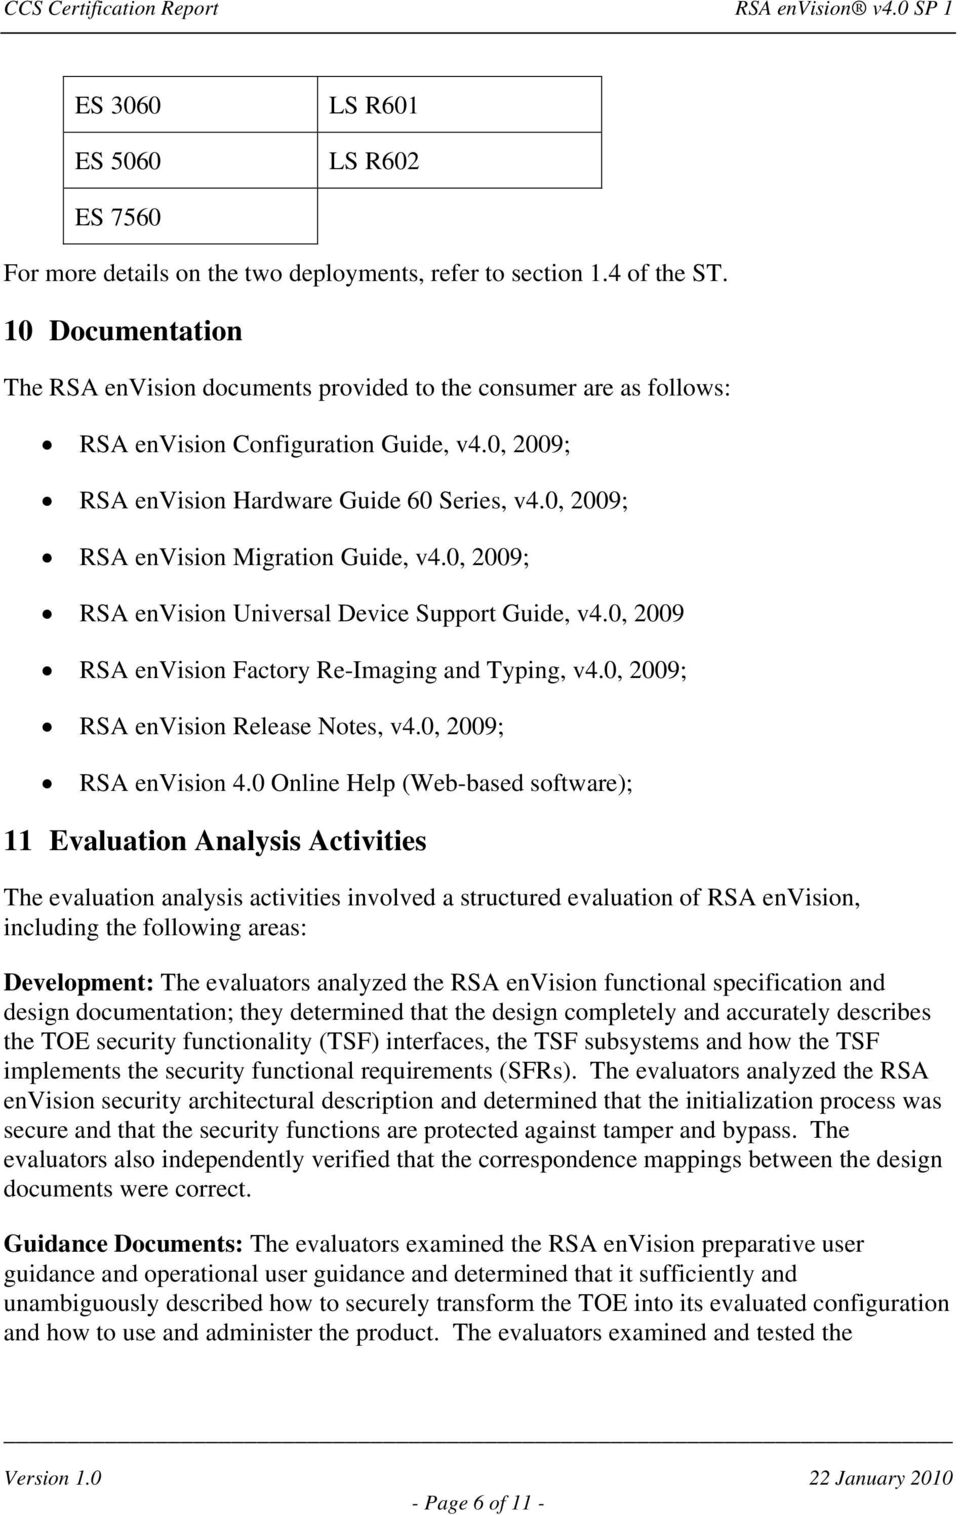 0, 2009; RSA envision Migration Guide, v4.0, 2009; RSA envision Universal Device Support Guide, v4.0, 2009 RSA envision Factory Re-Imaging and Typing, v4.0, 2009; RSA envision Release Notes, v4.